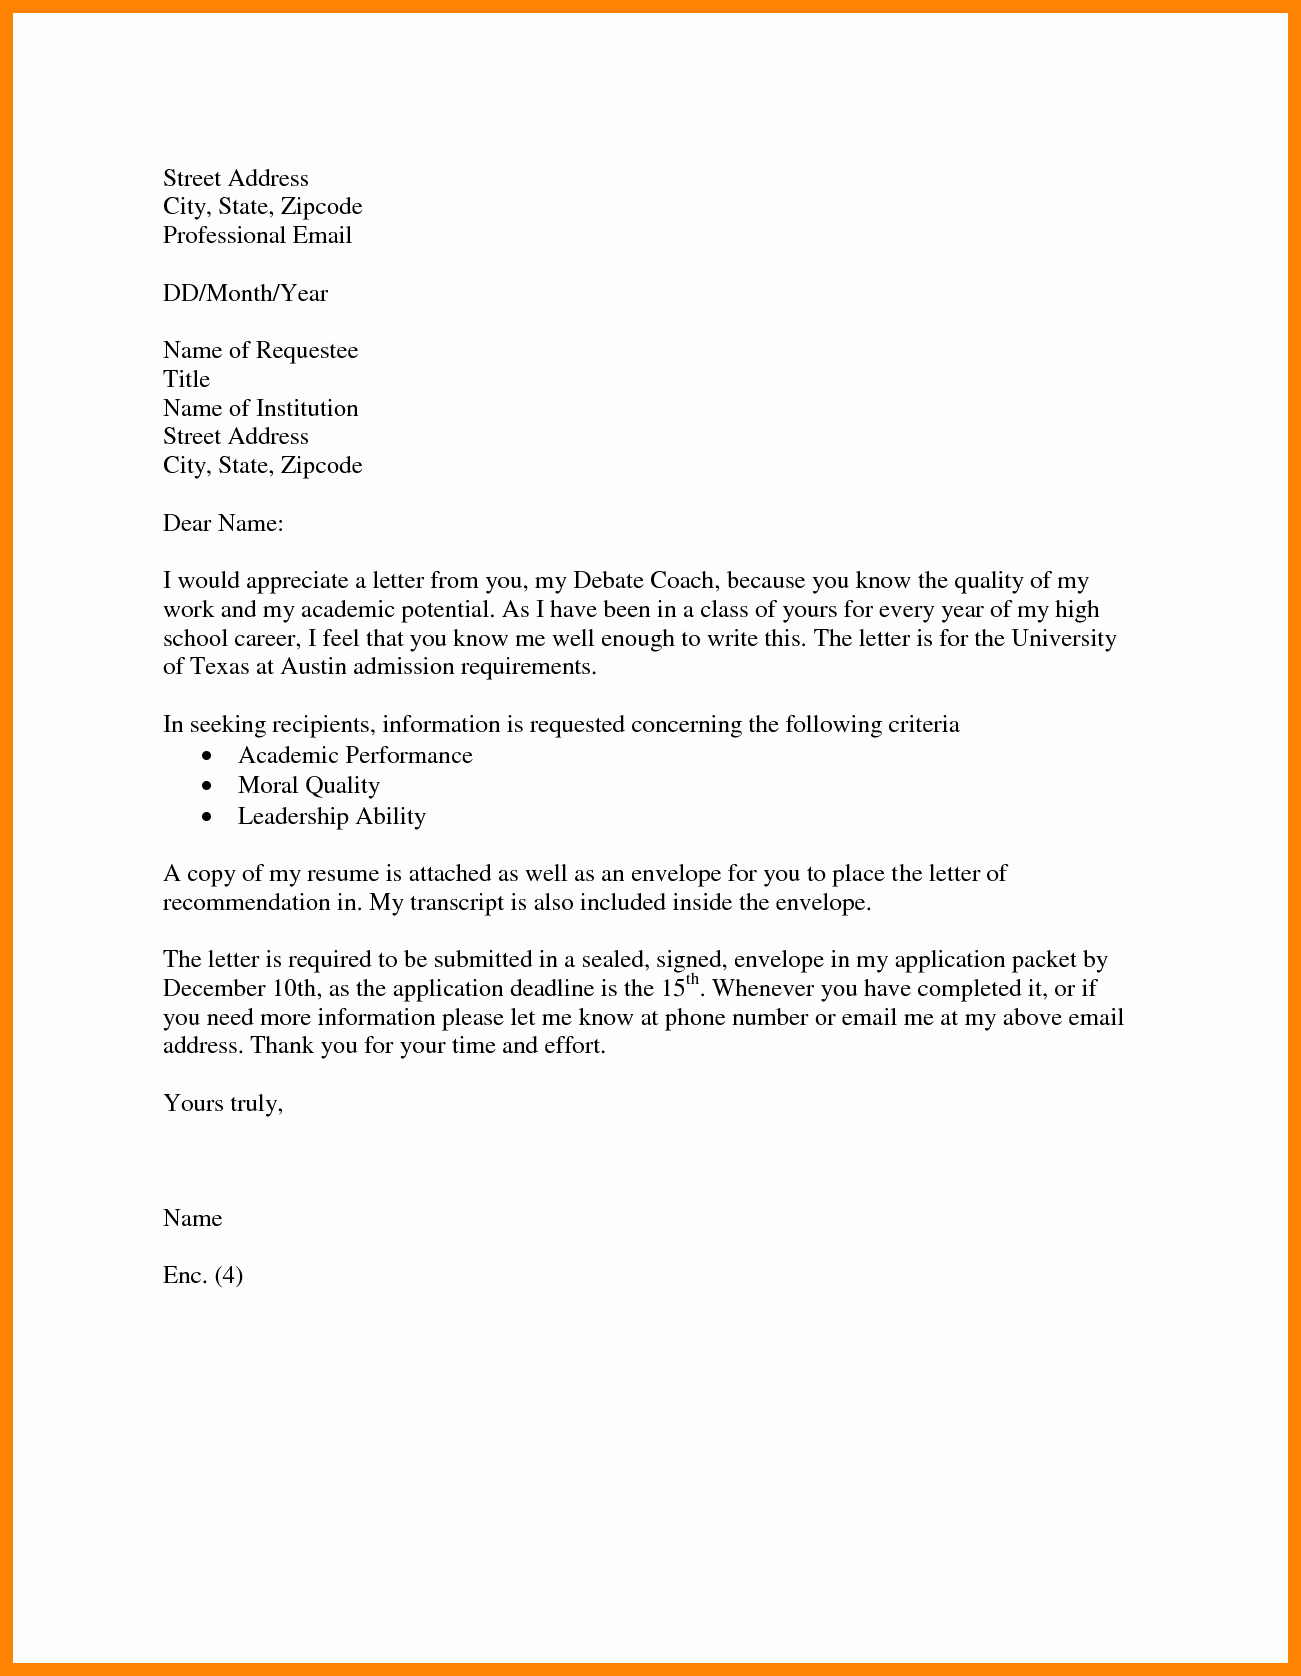 Formal Letter format for School Inspirational formal Letter format for School